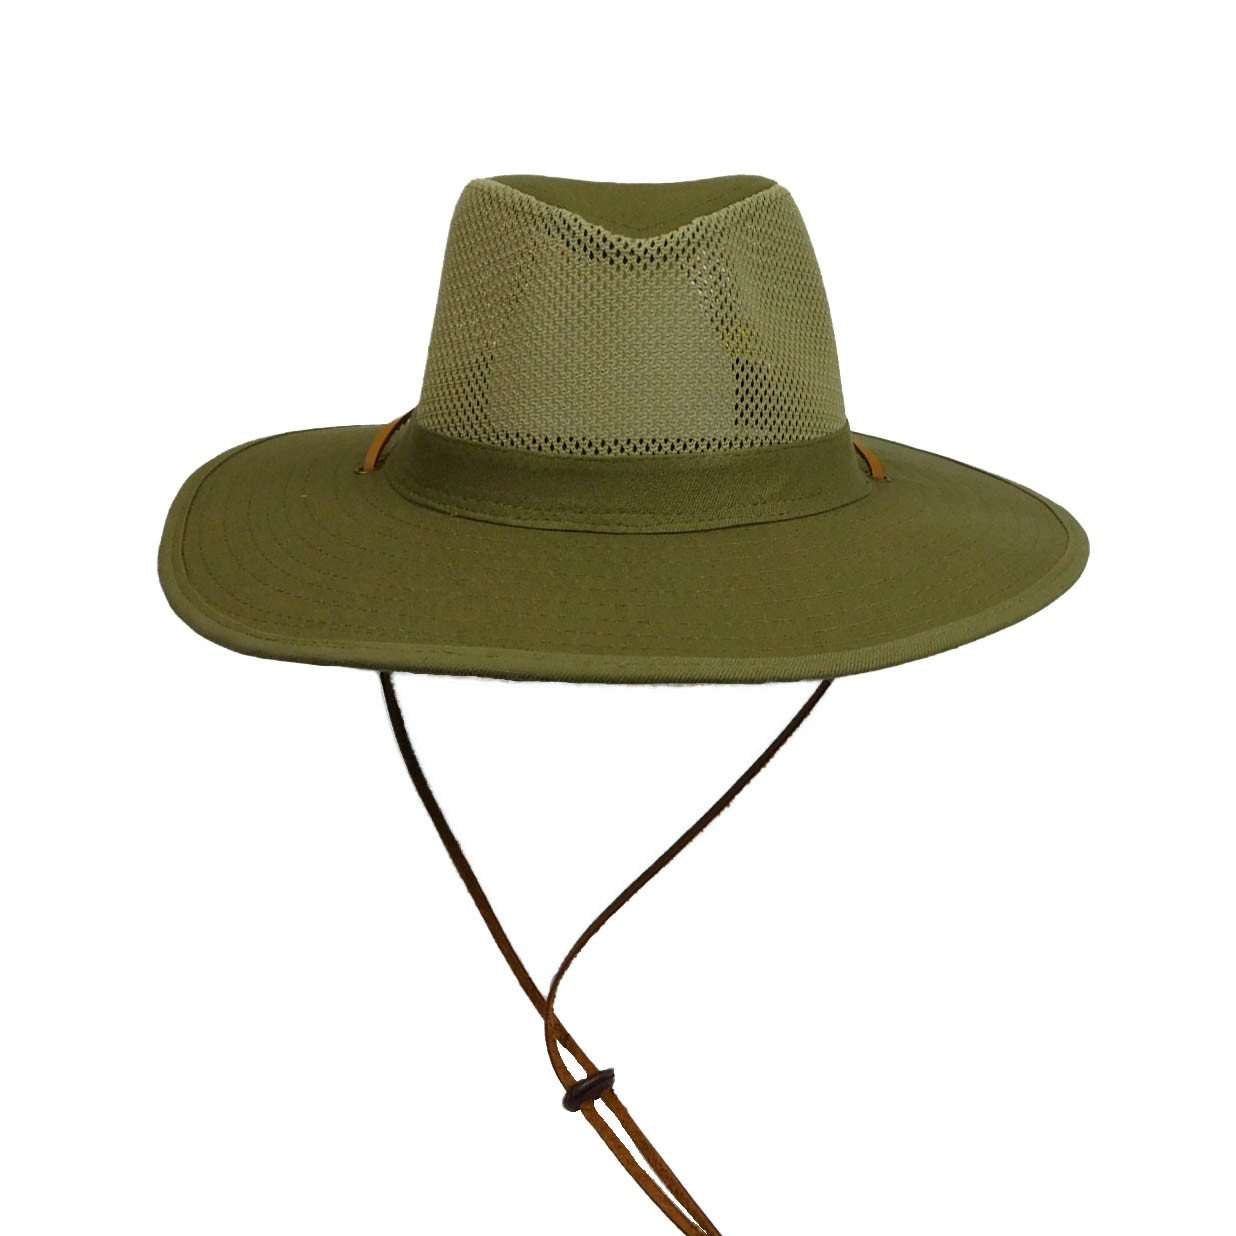 Mesh Top Safari Hat -Olive - SetarTrading Hats